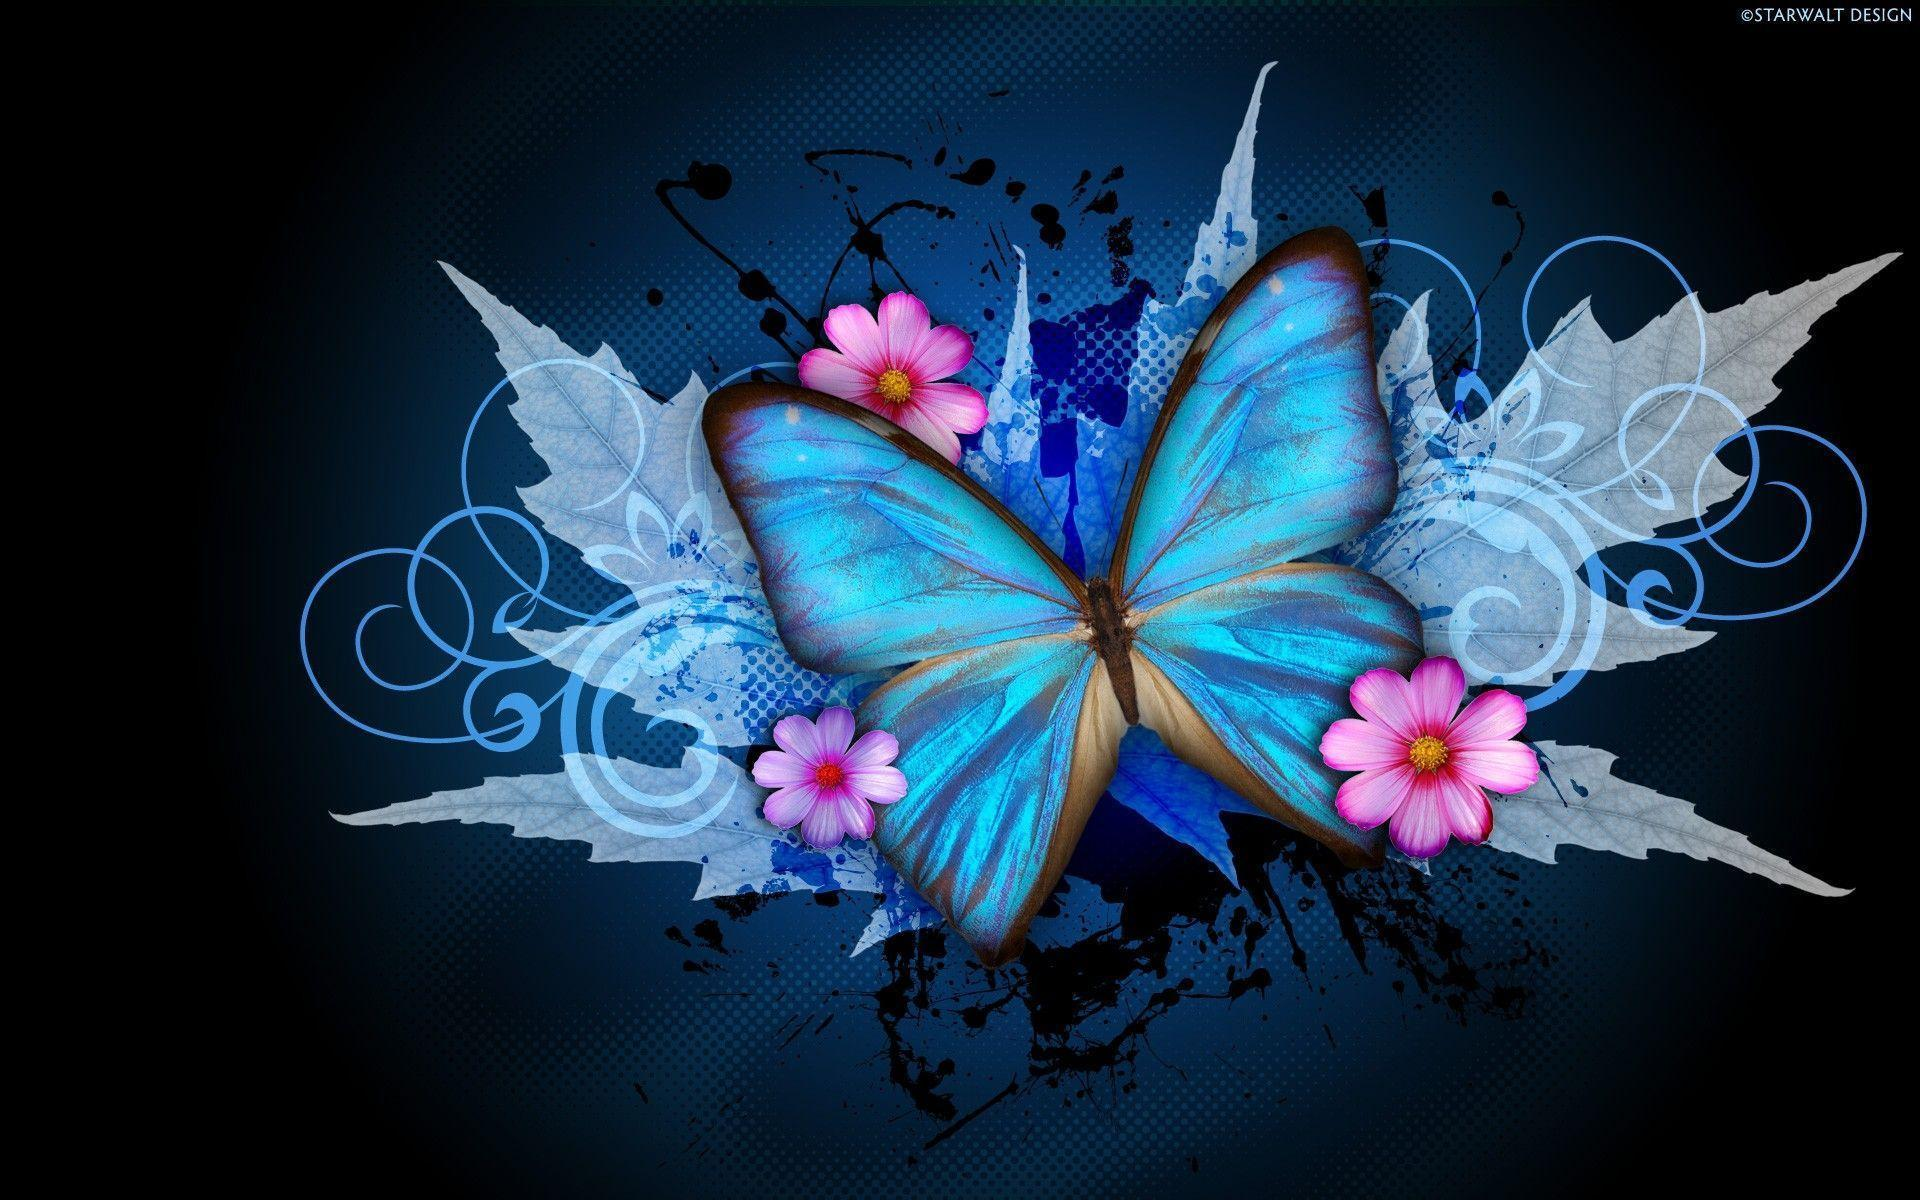 Abstract Butterfly Wallpapers   Wallpaper Cave Abstract Butterfly Wallpaper